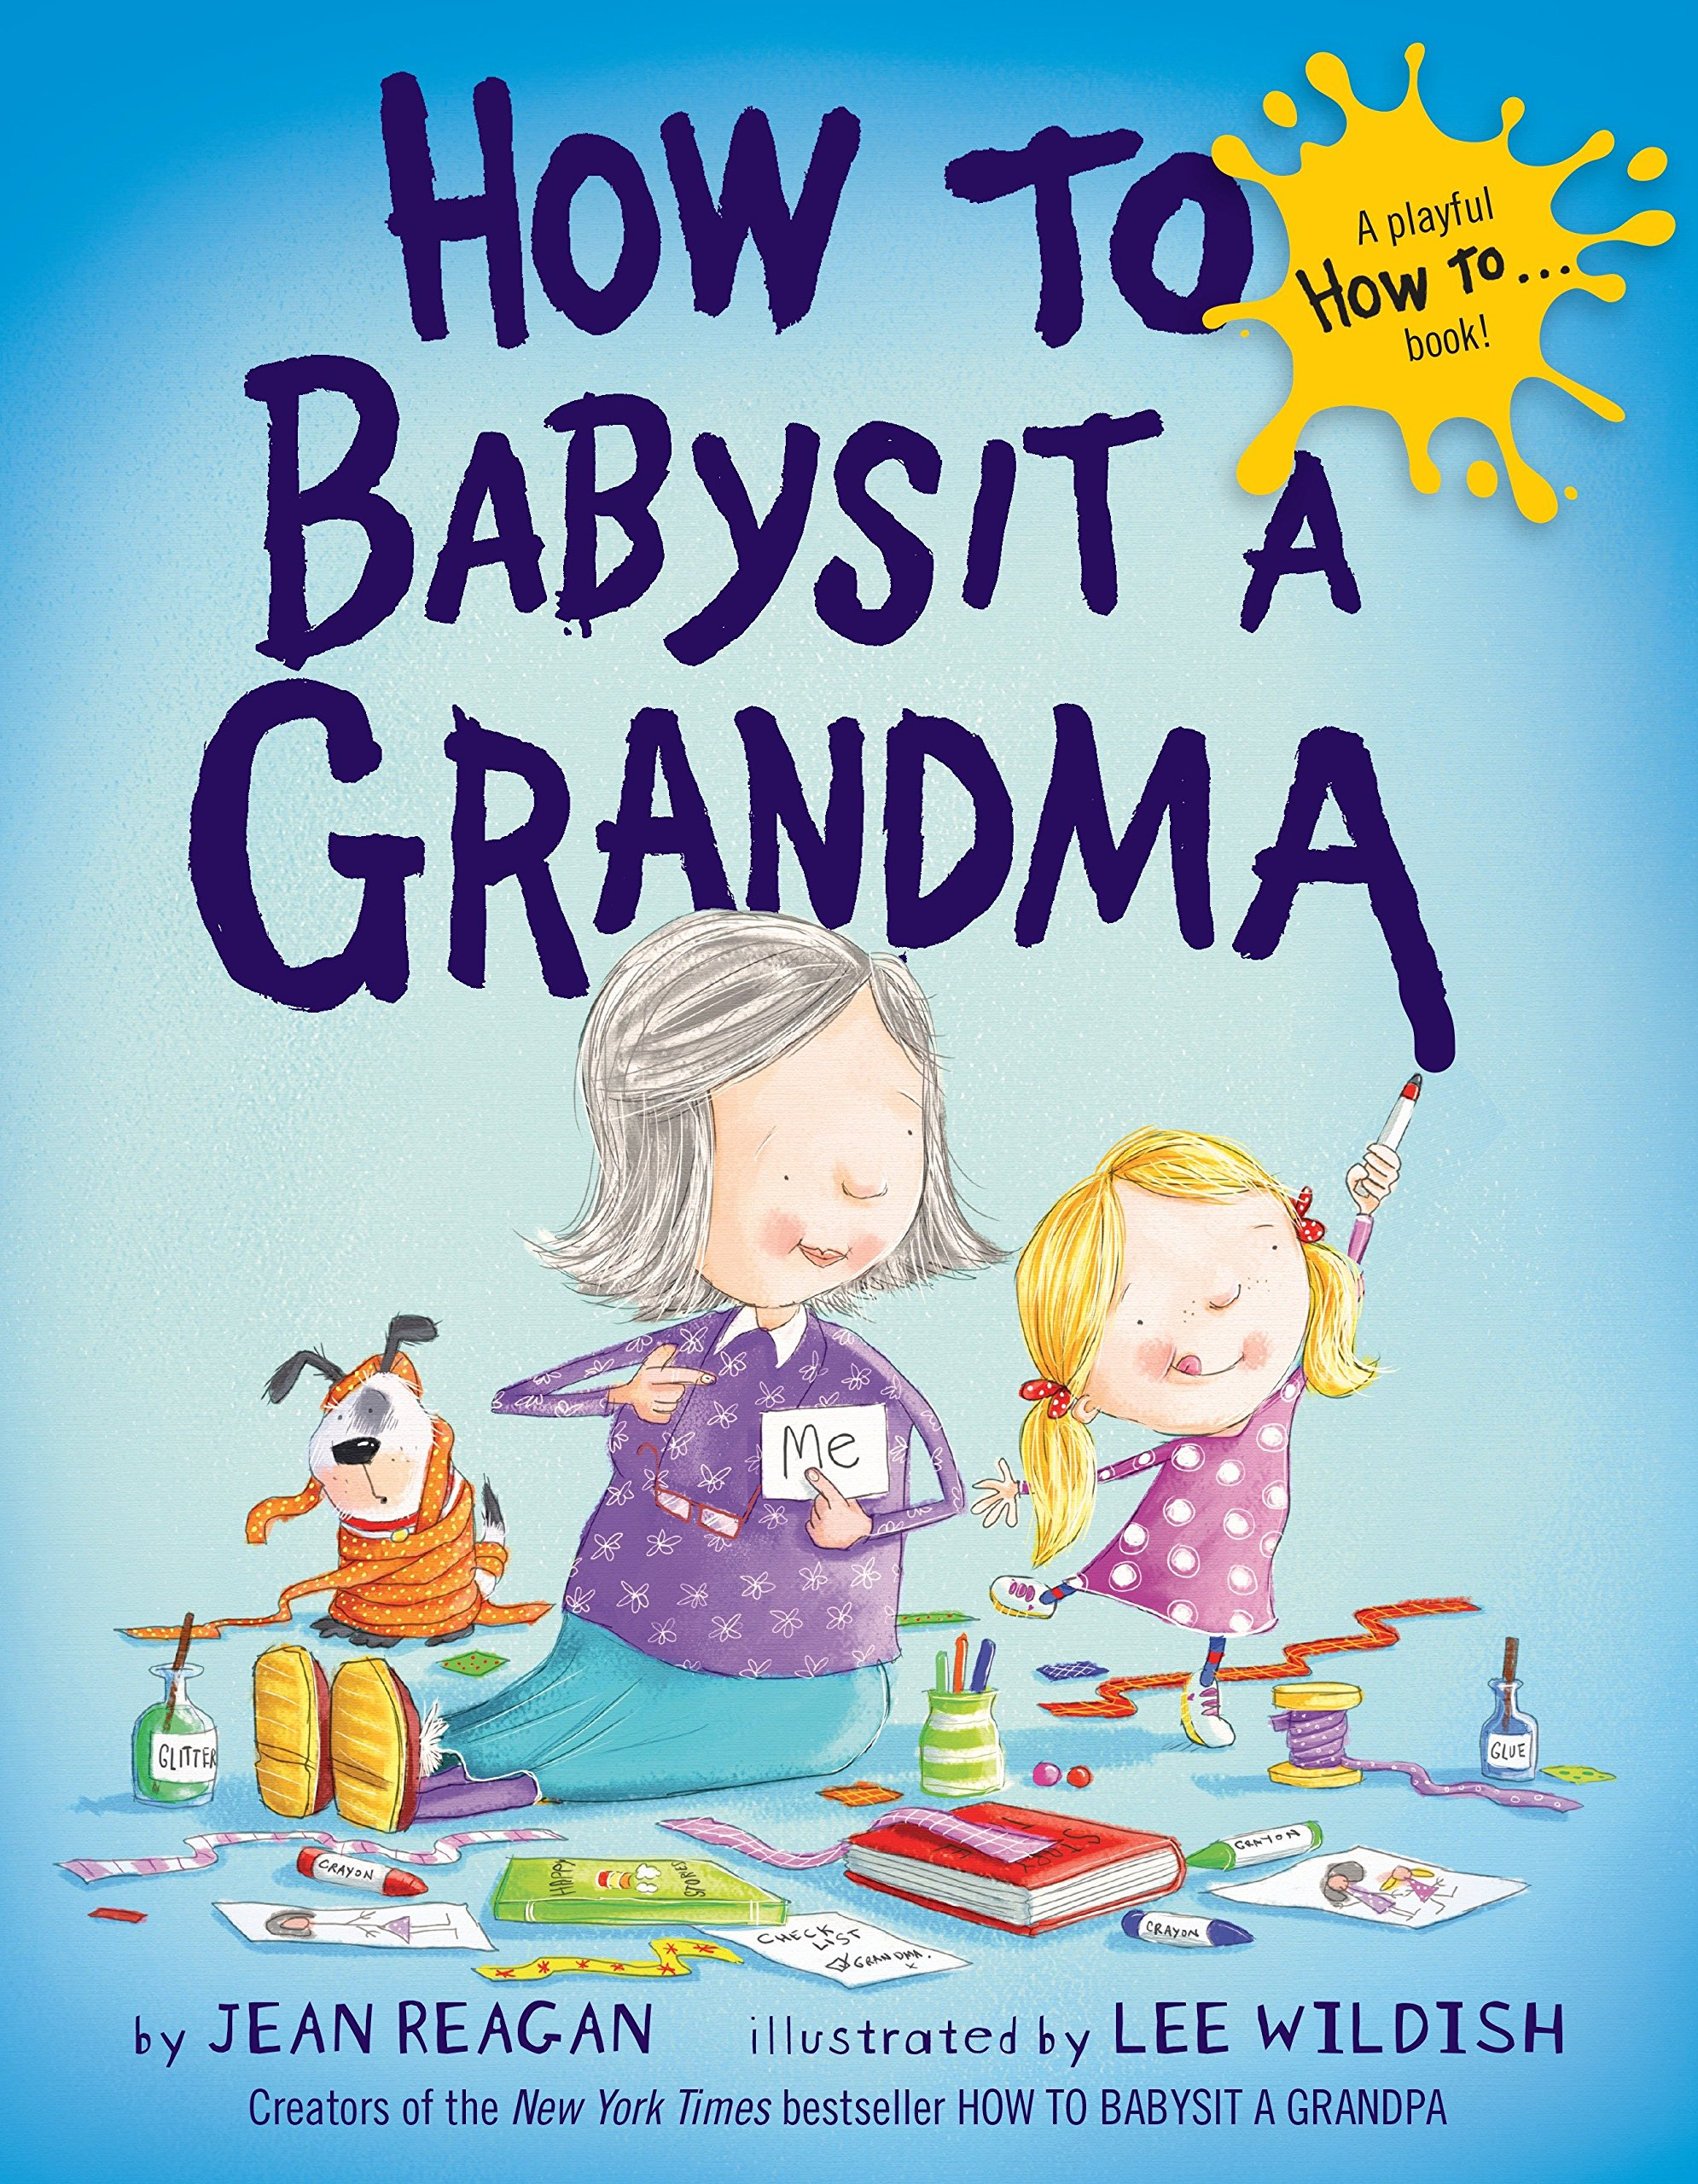 This book and many others are available from the MidPointe collection. Little ones love to read with (and about!) grandparents and other family members!